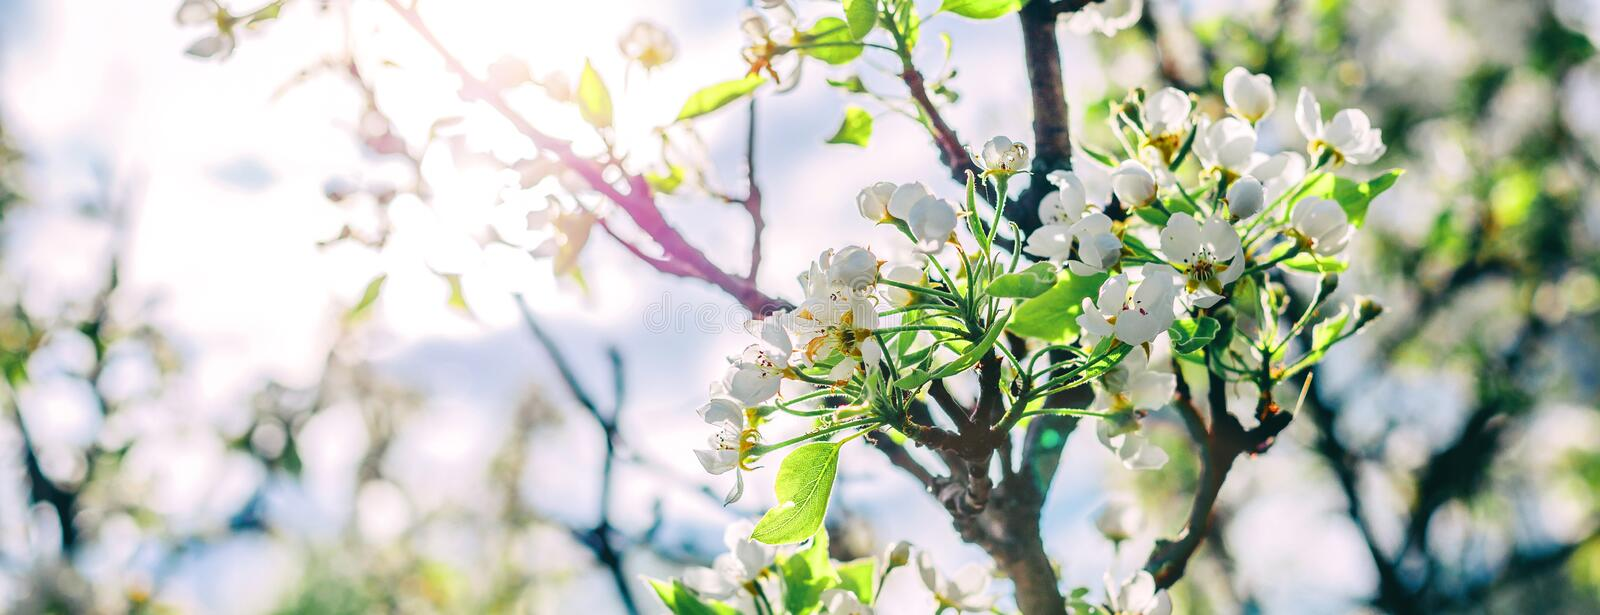 Blossom tree over nature background. Beautiful nature scene with blooming tree, sun and snow. Easter Sunny day. Spring flowers stock photos